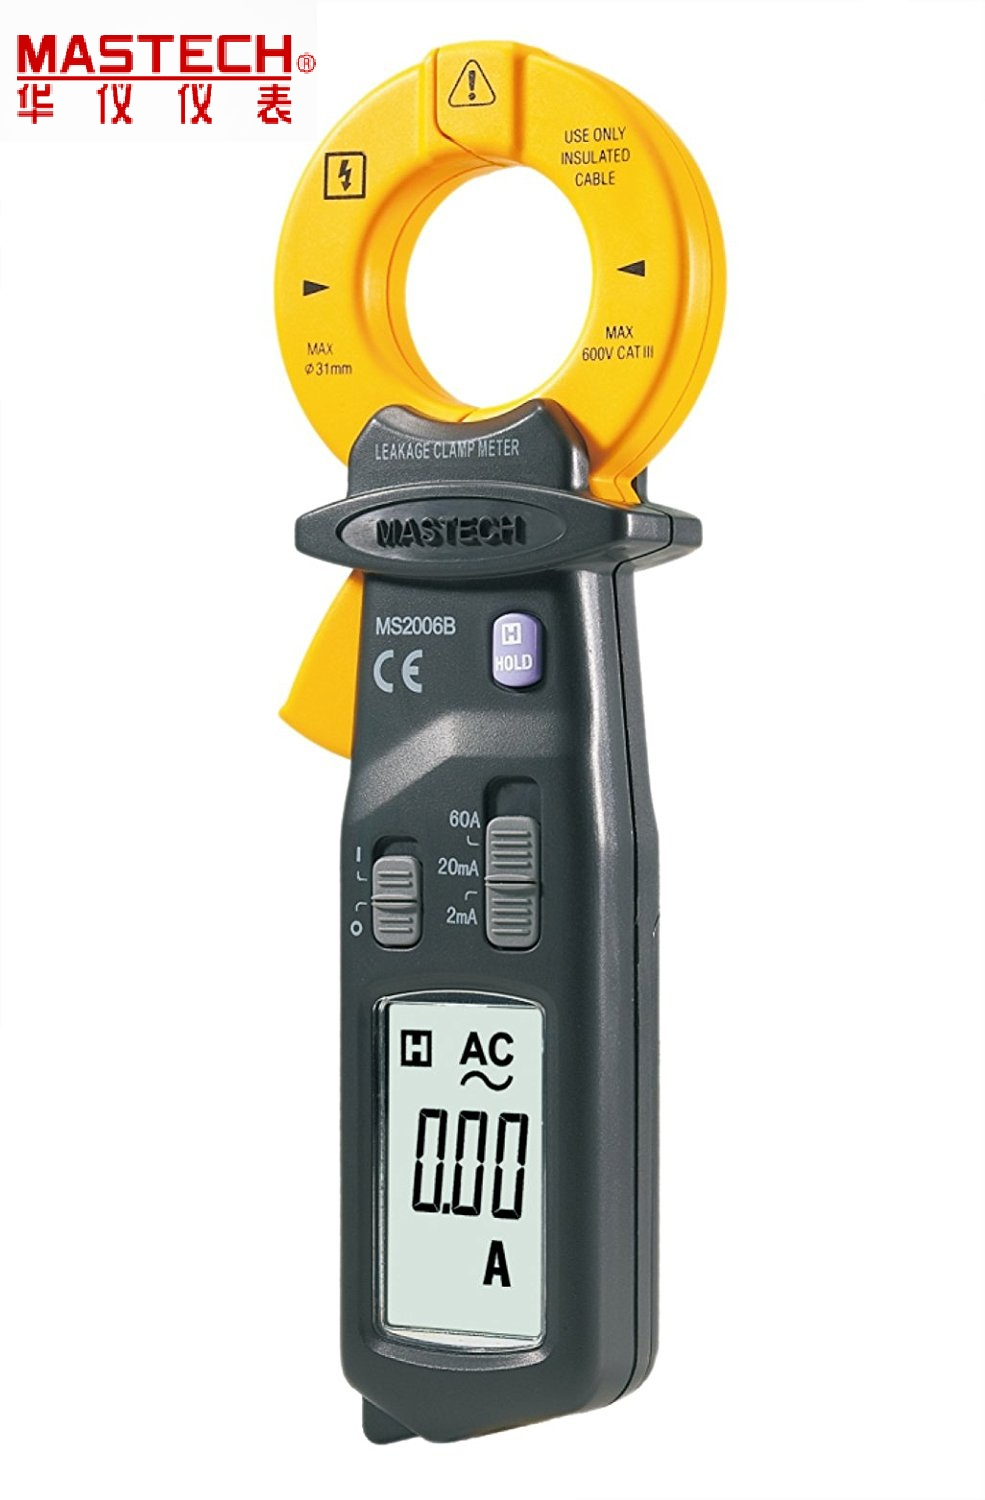 Brand New MASTECH MS2006B Digital Clamp Meters AC Current Tester AC Leakage Clamp Meter 0.001mA Resolution mas tech pro mini mastech ms3302 ac current transducer 0 1a 400a clamp meter test hot sales